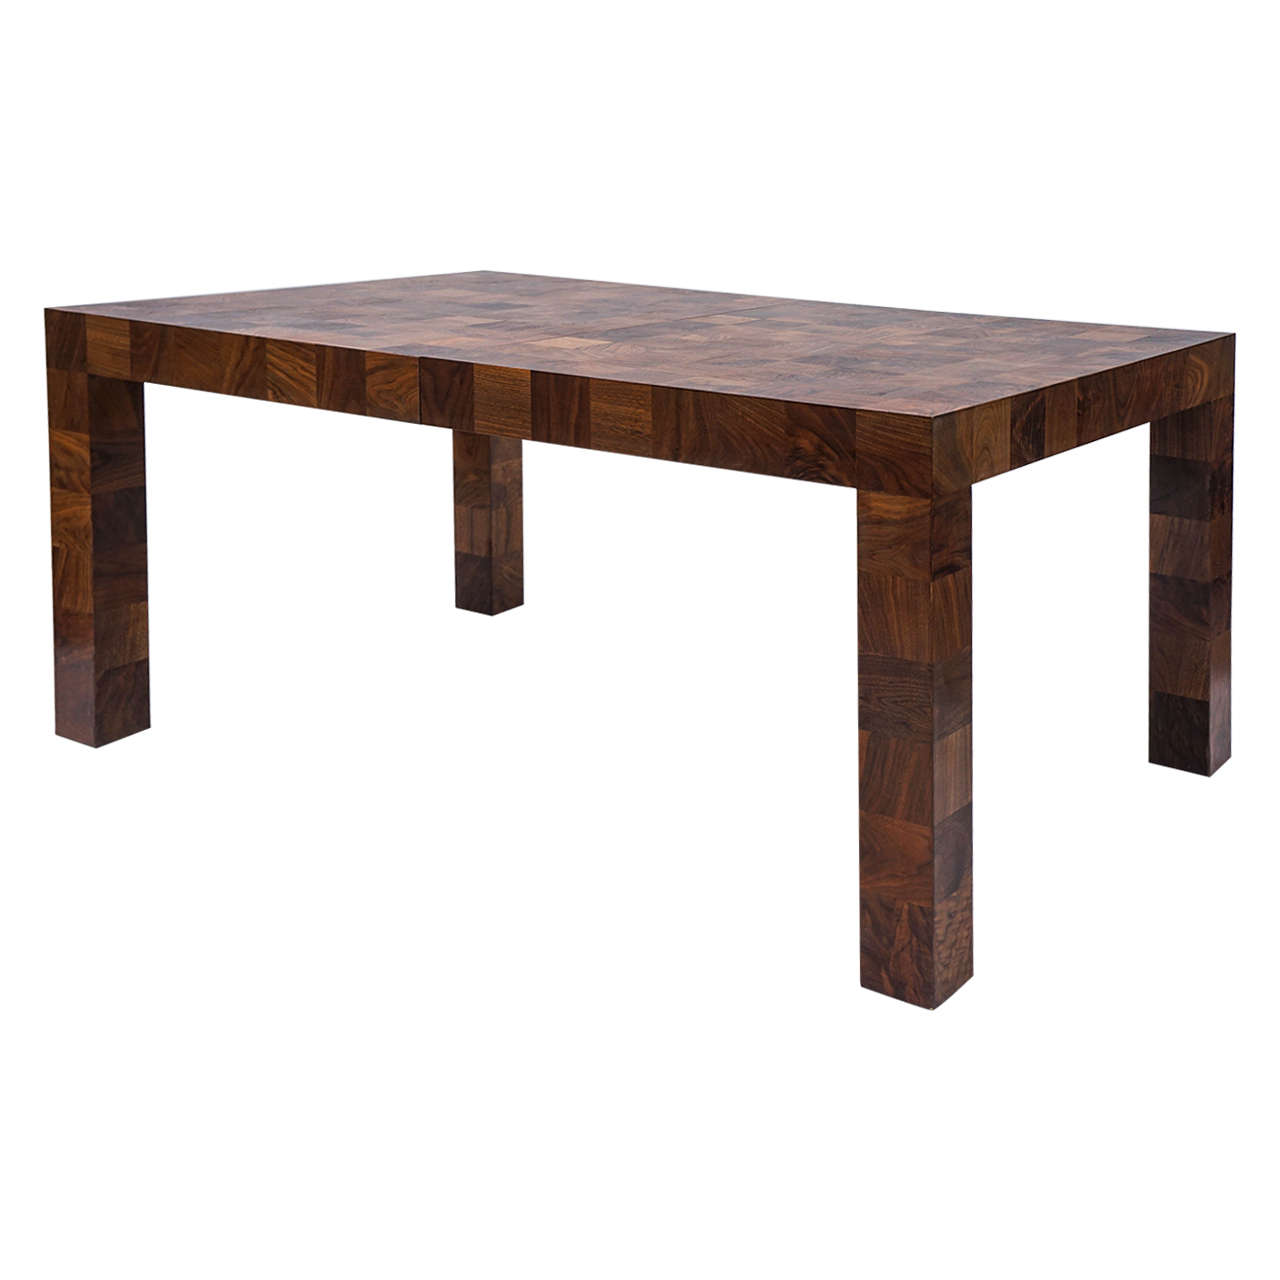 Milo Baughman Patchwork, Burlwood Parsons Dining Table Thayer Coggin.